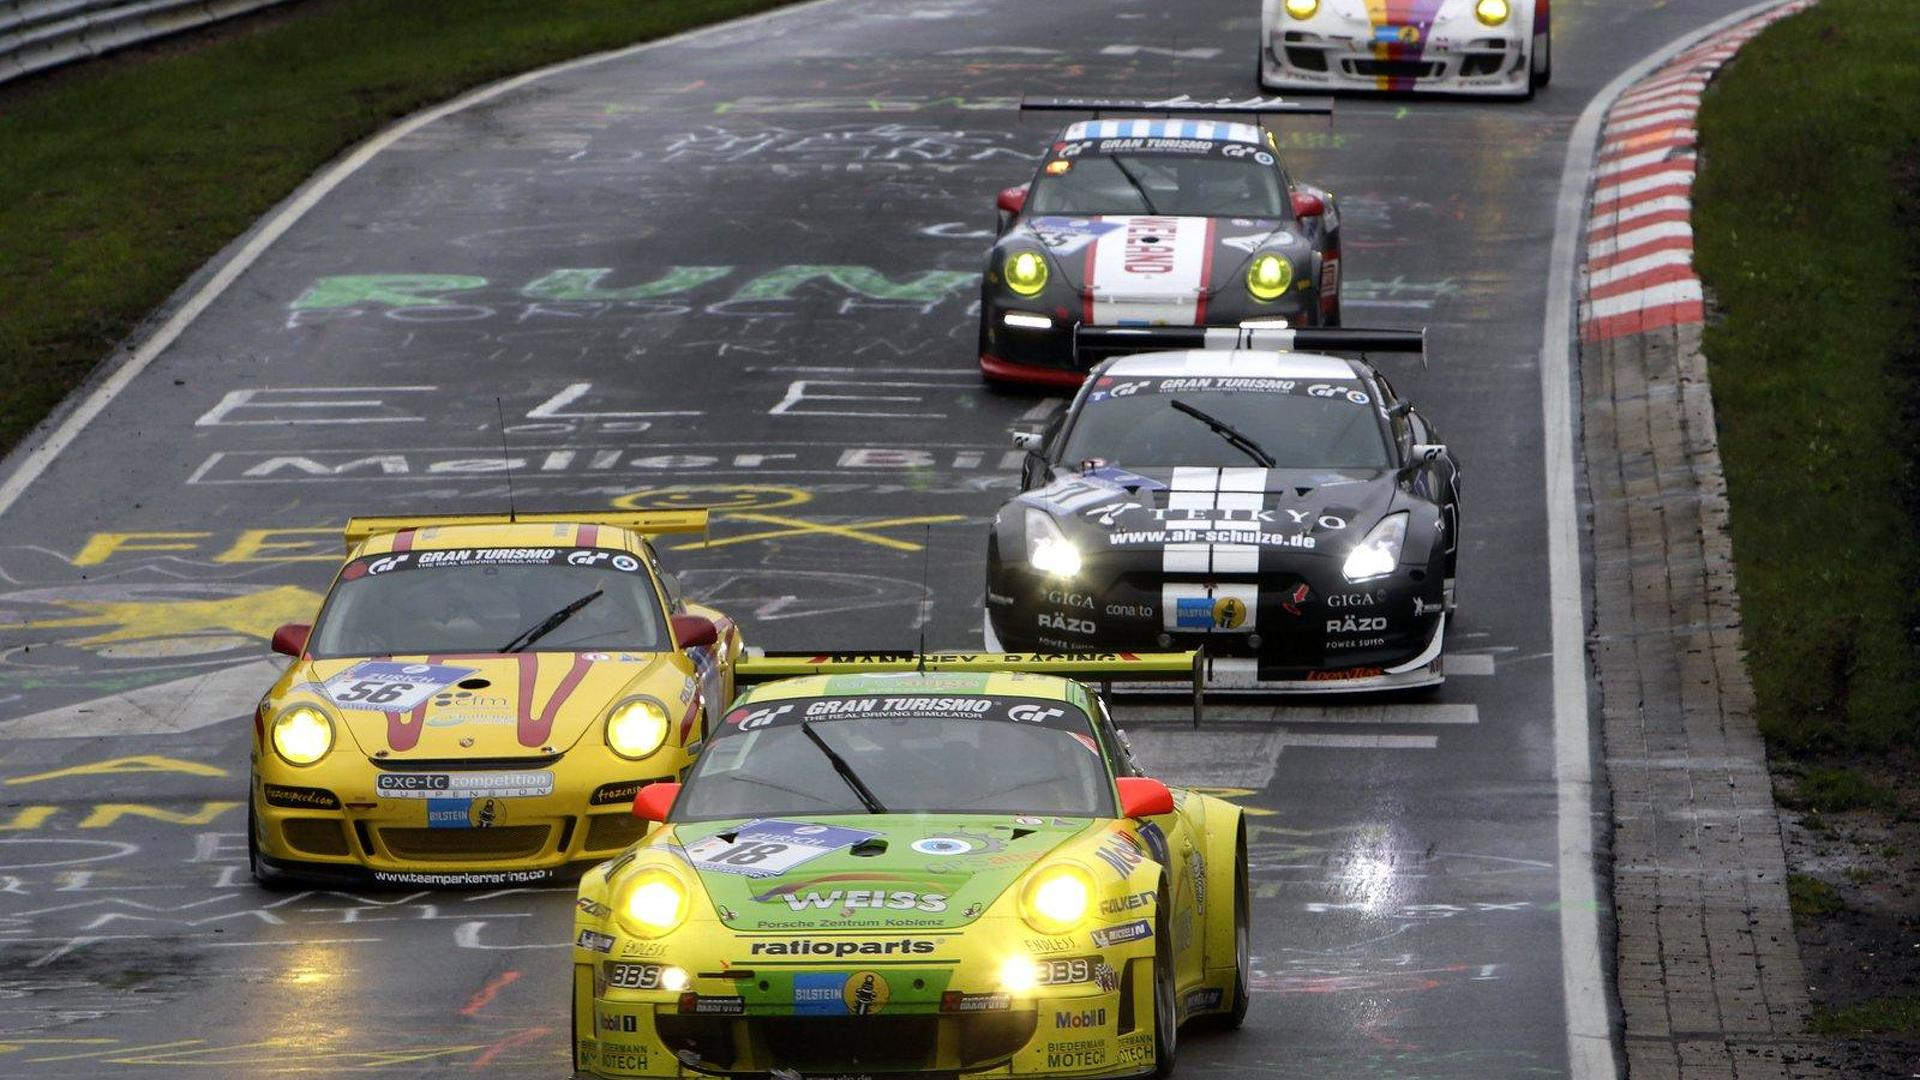 Ecclestone vows to 'do everything' to help Nurburgring